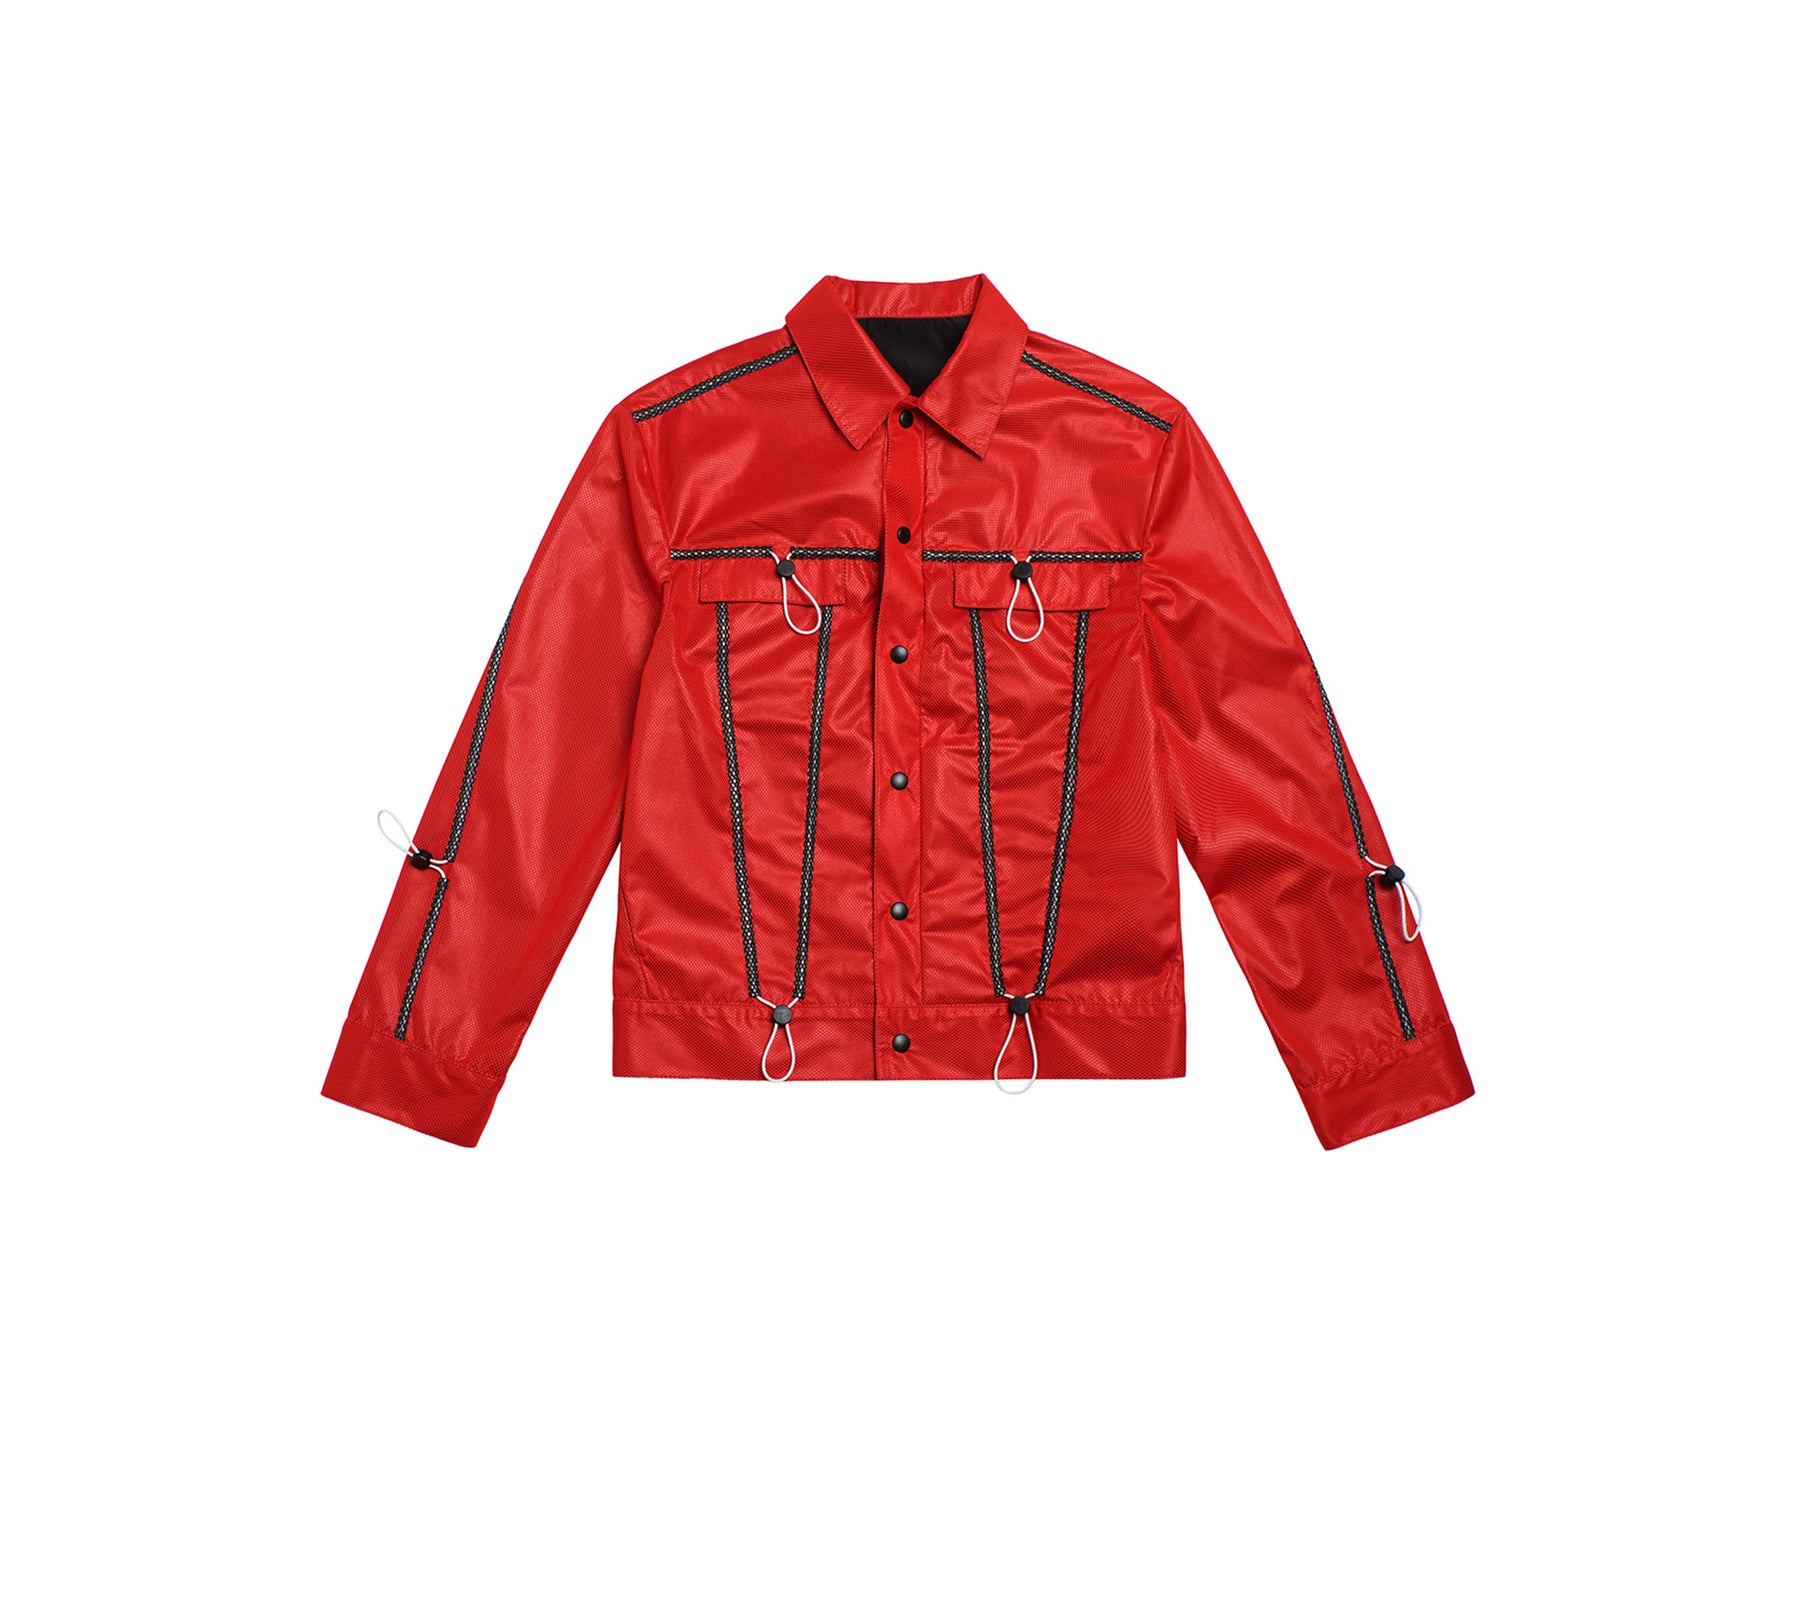 DRAWSTRING PATCHWORK JACKET